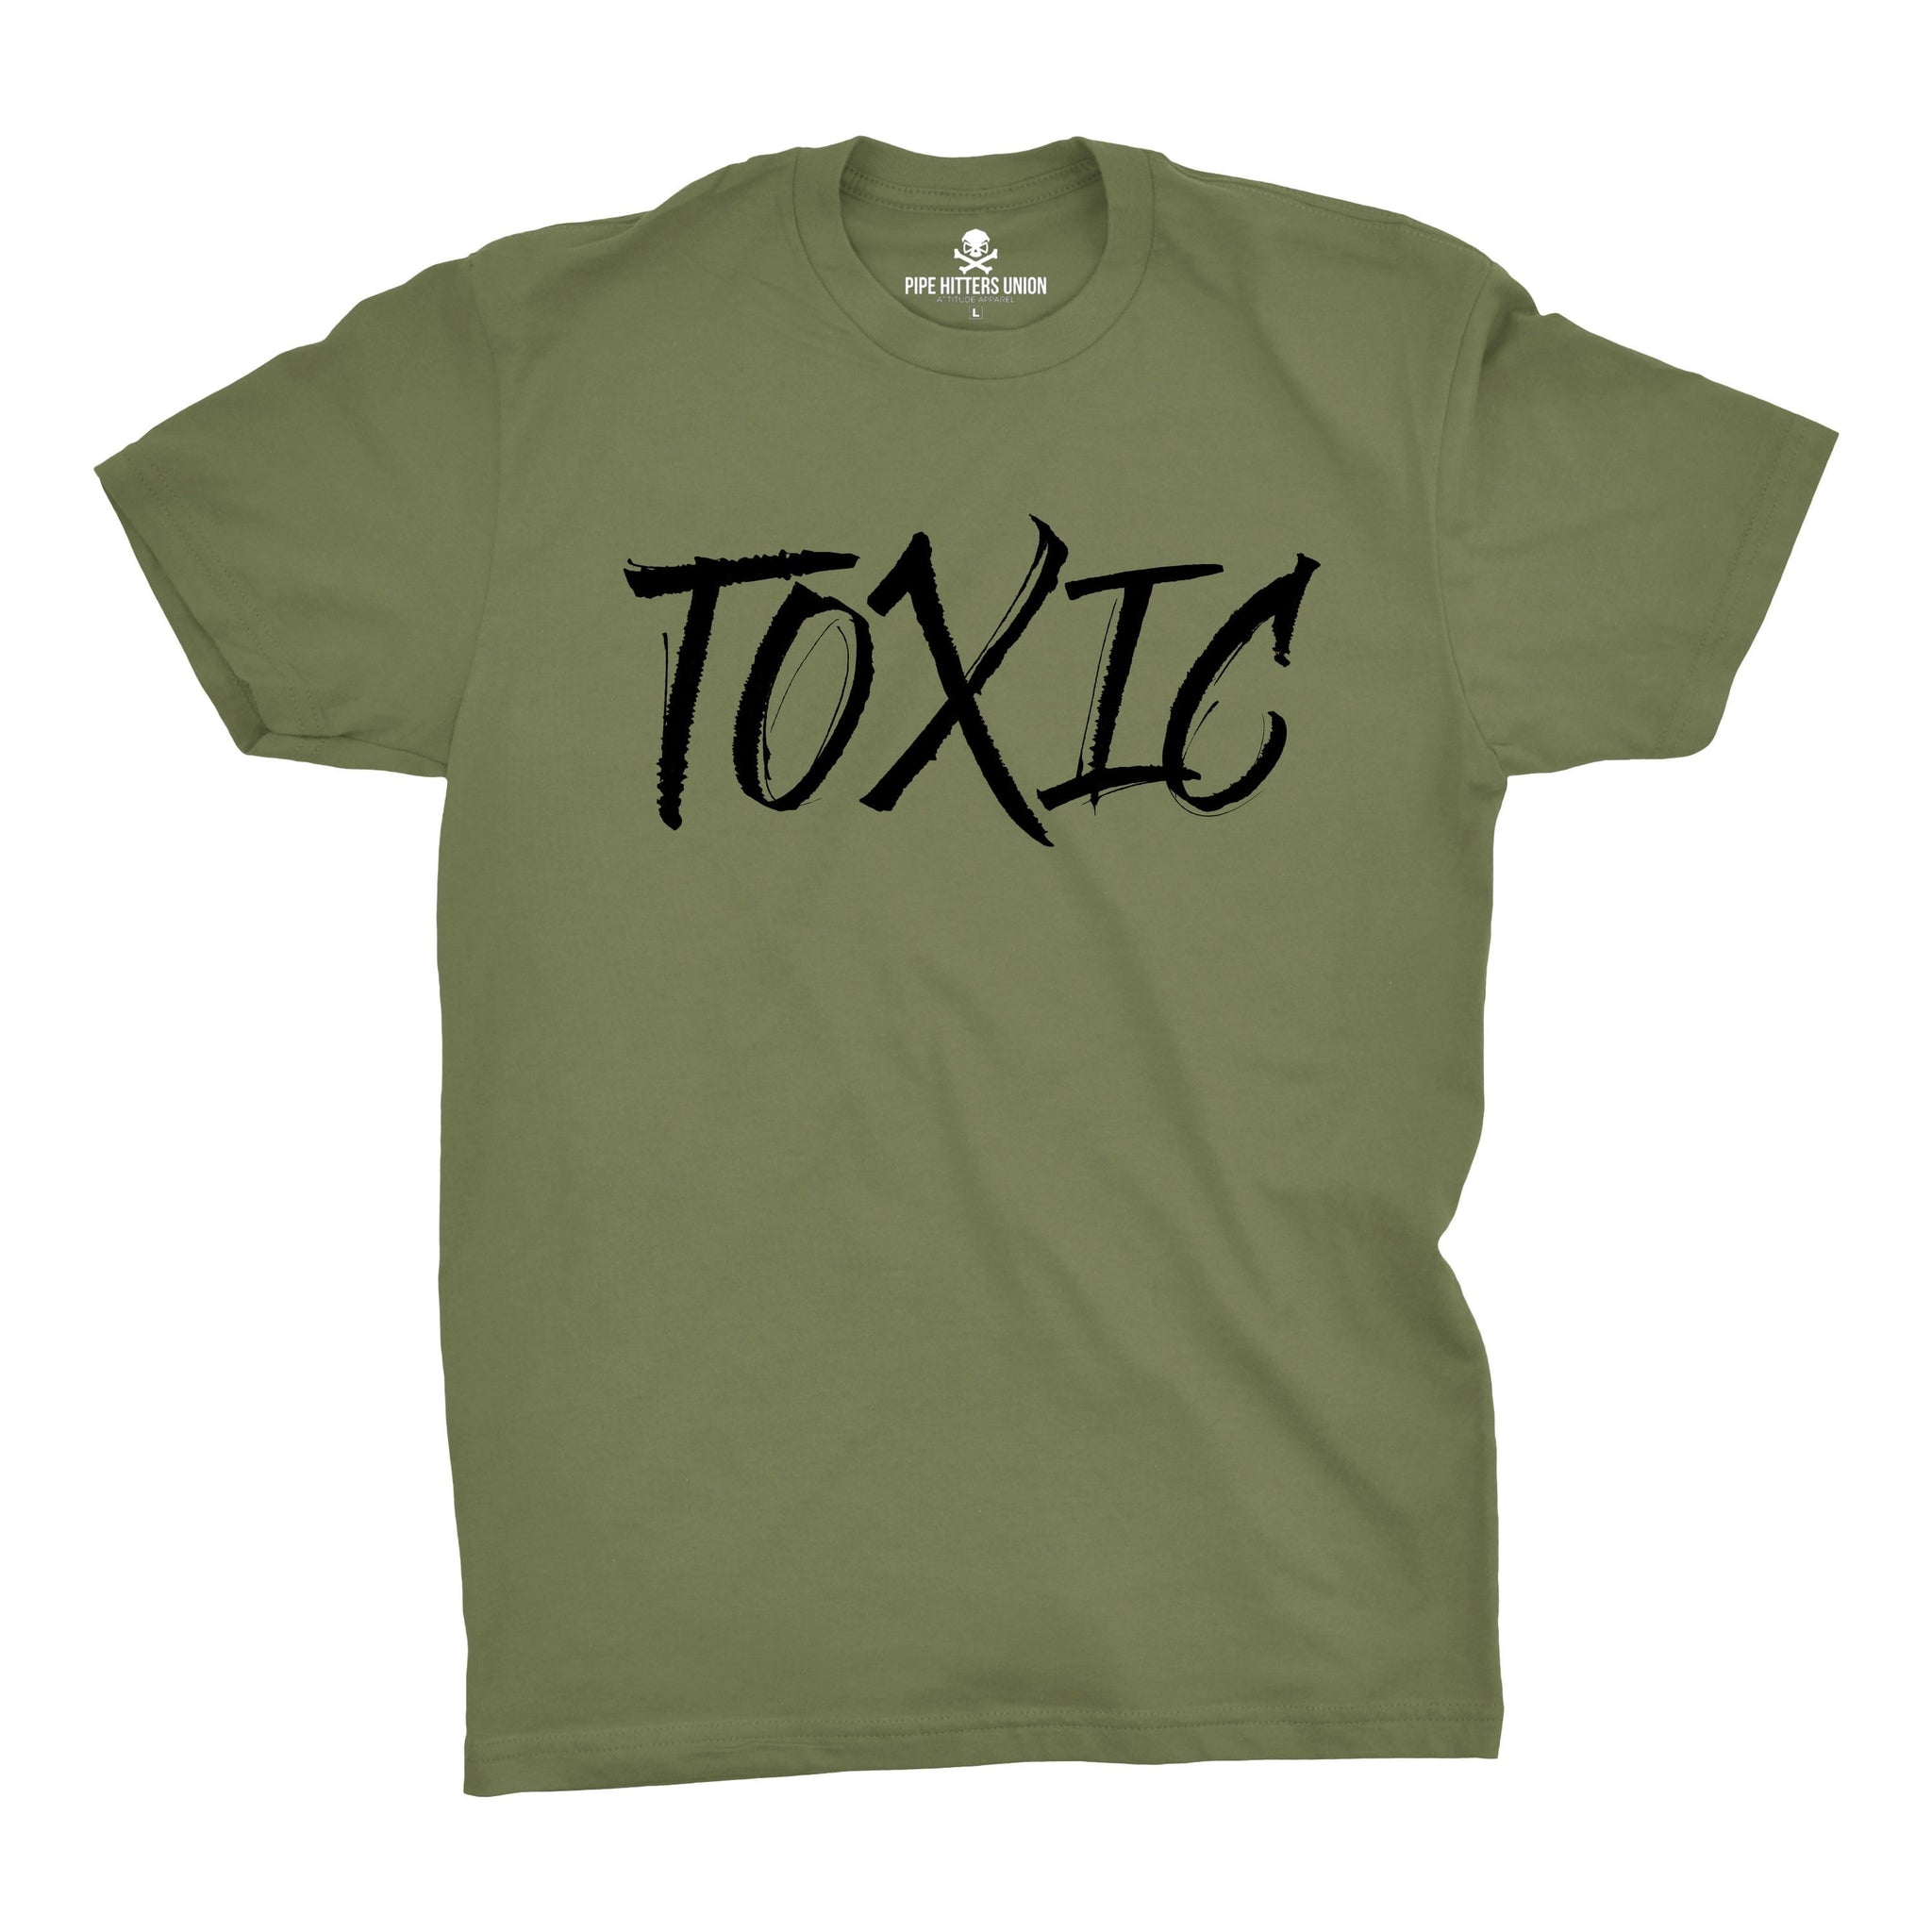 Toxic - Military Green - T-Shirts - Pipe Hitters Union